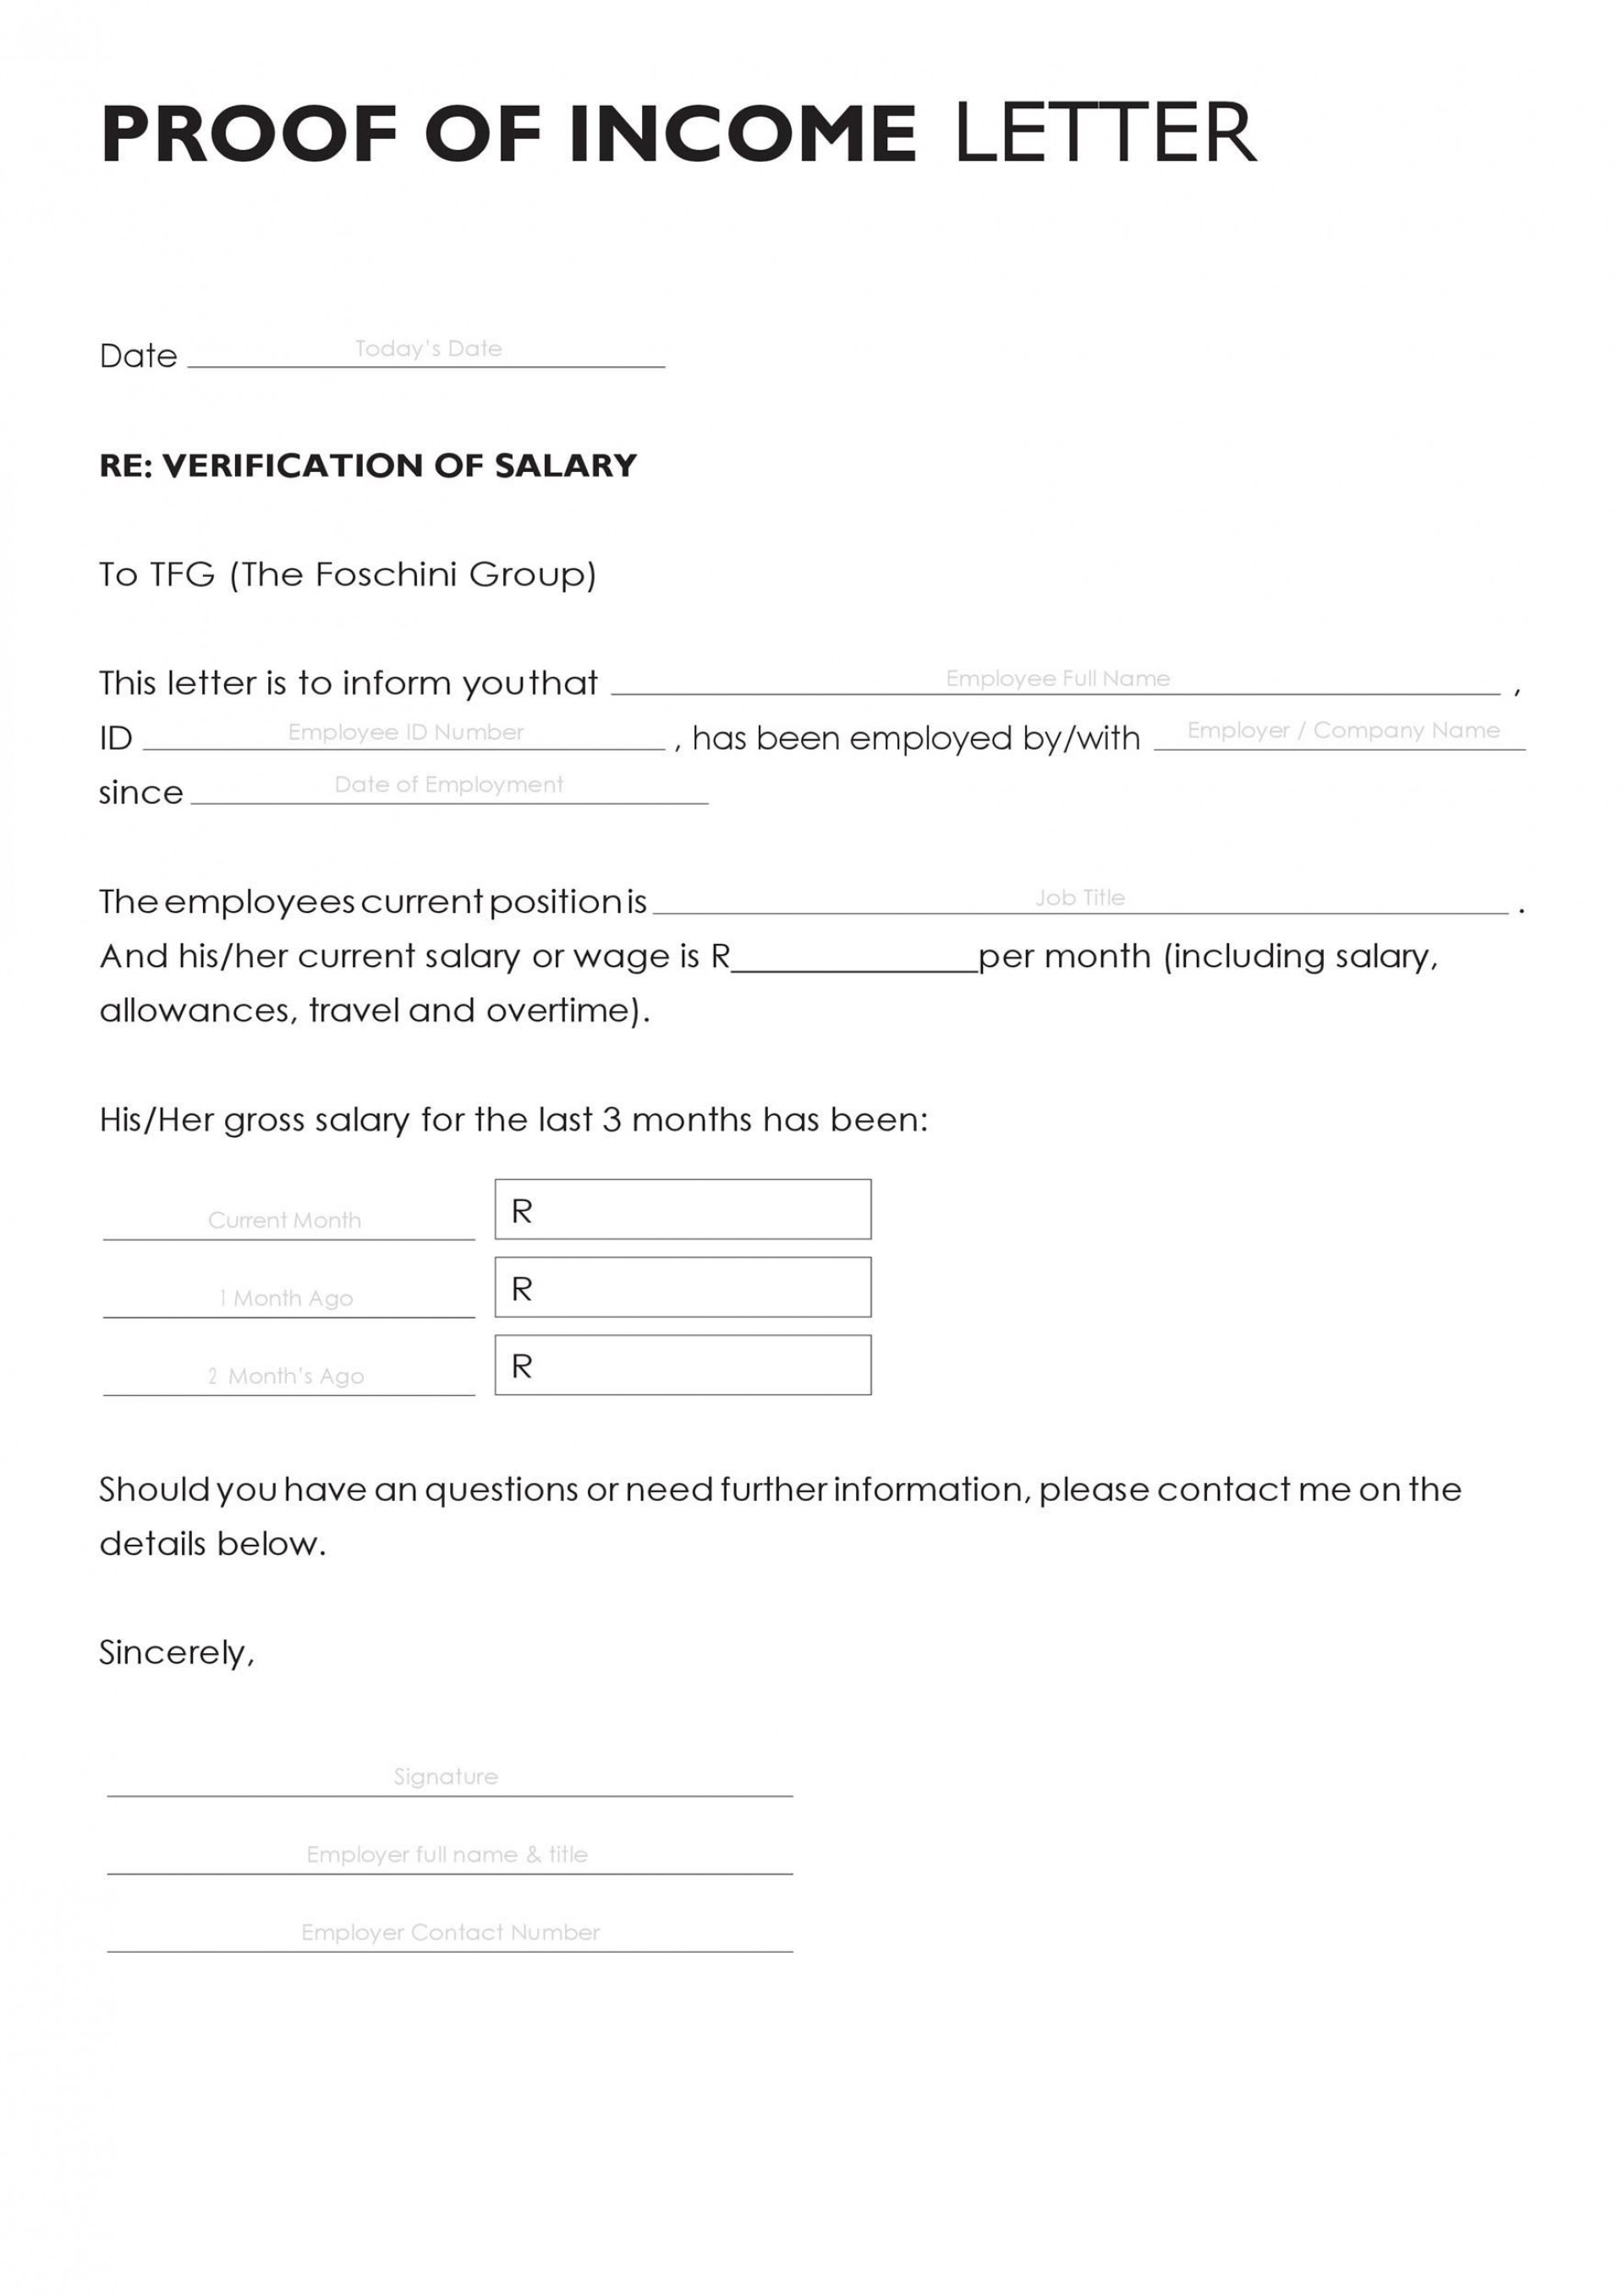 003 Archaicawful Free Income Verification Form Template High Def 1920